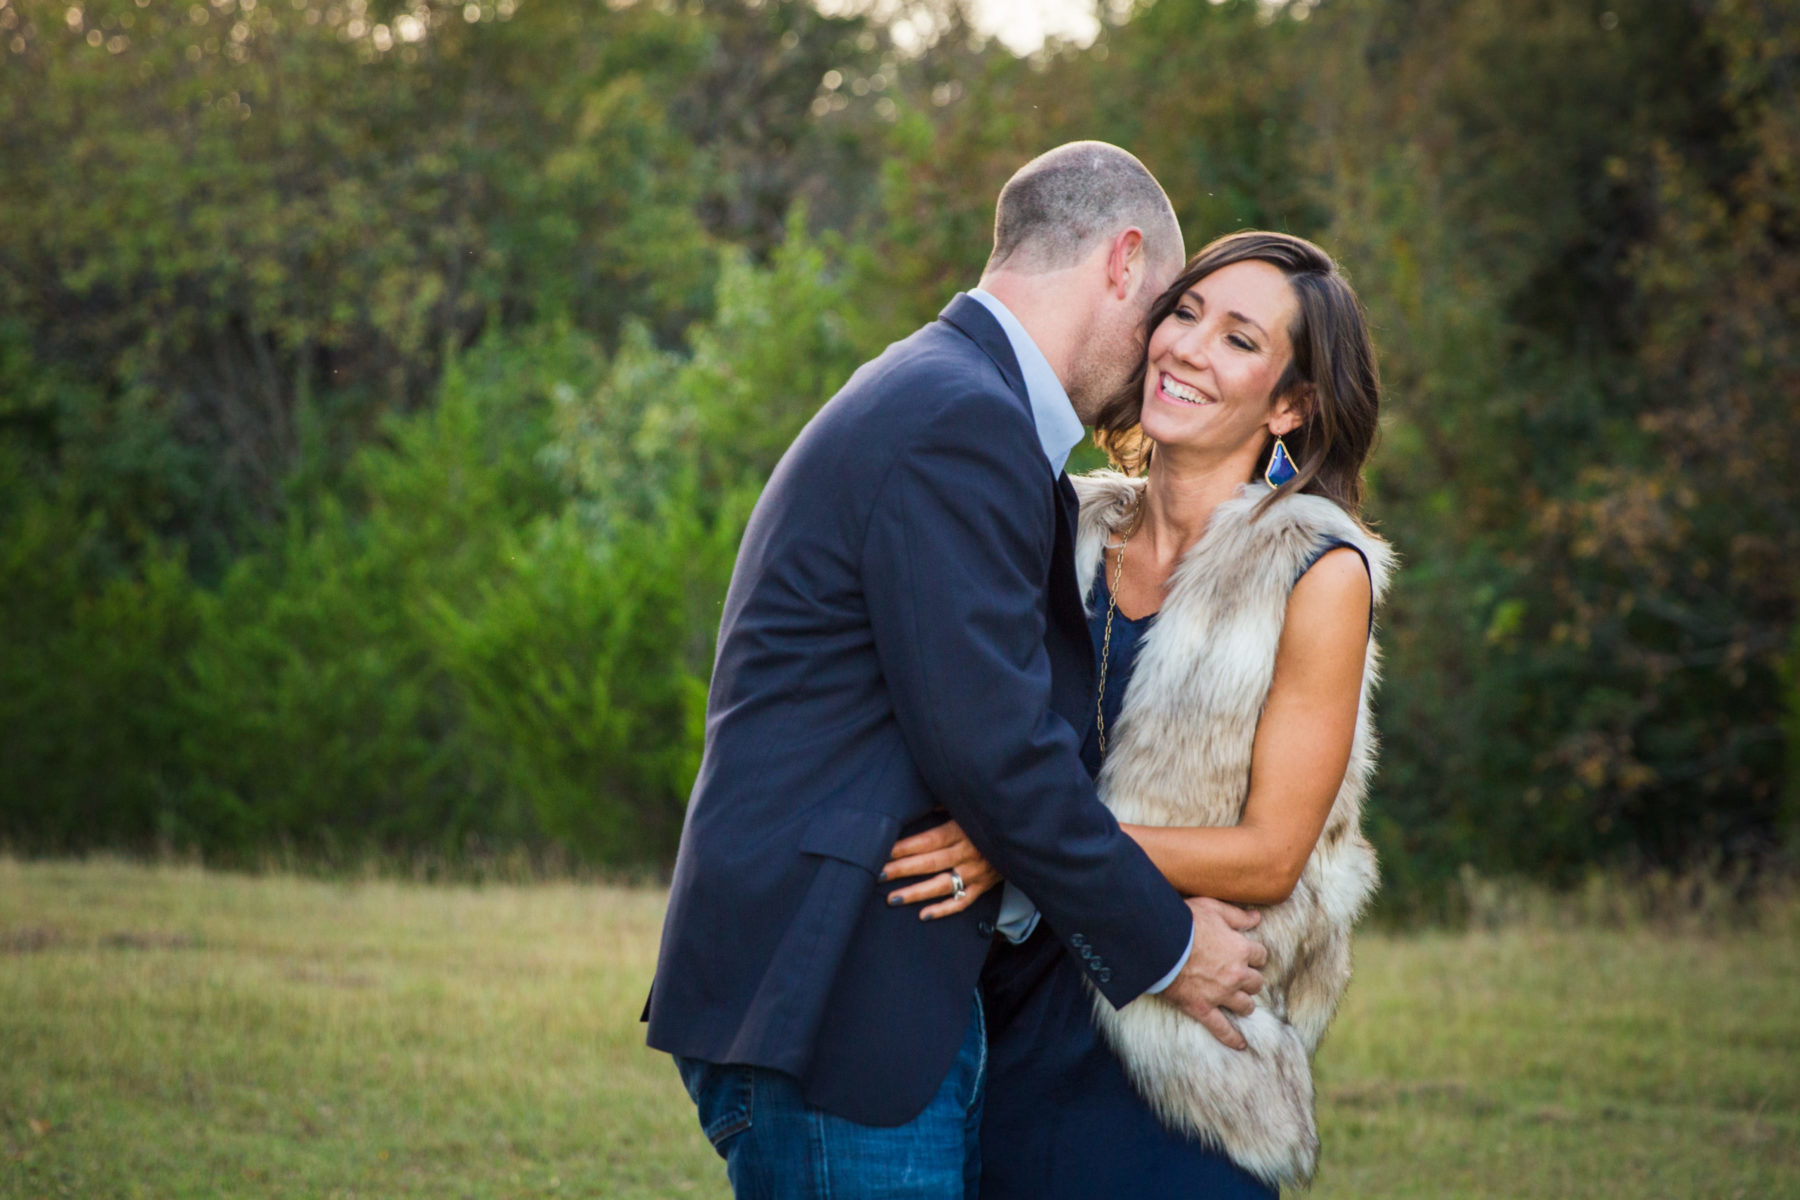 Mom and Dad embracing {Family Photographer| Prosper, TX}